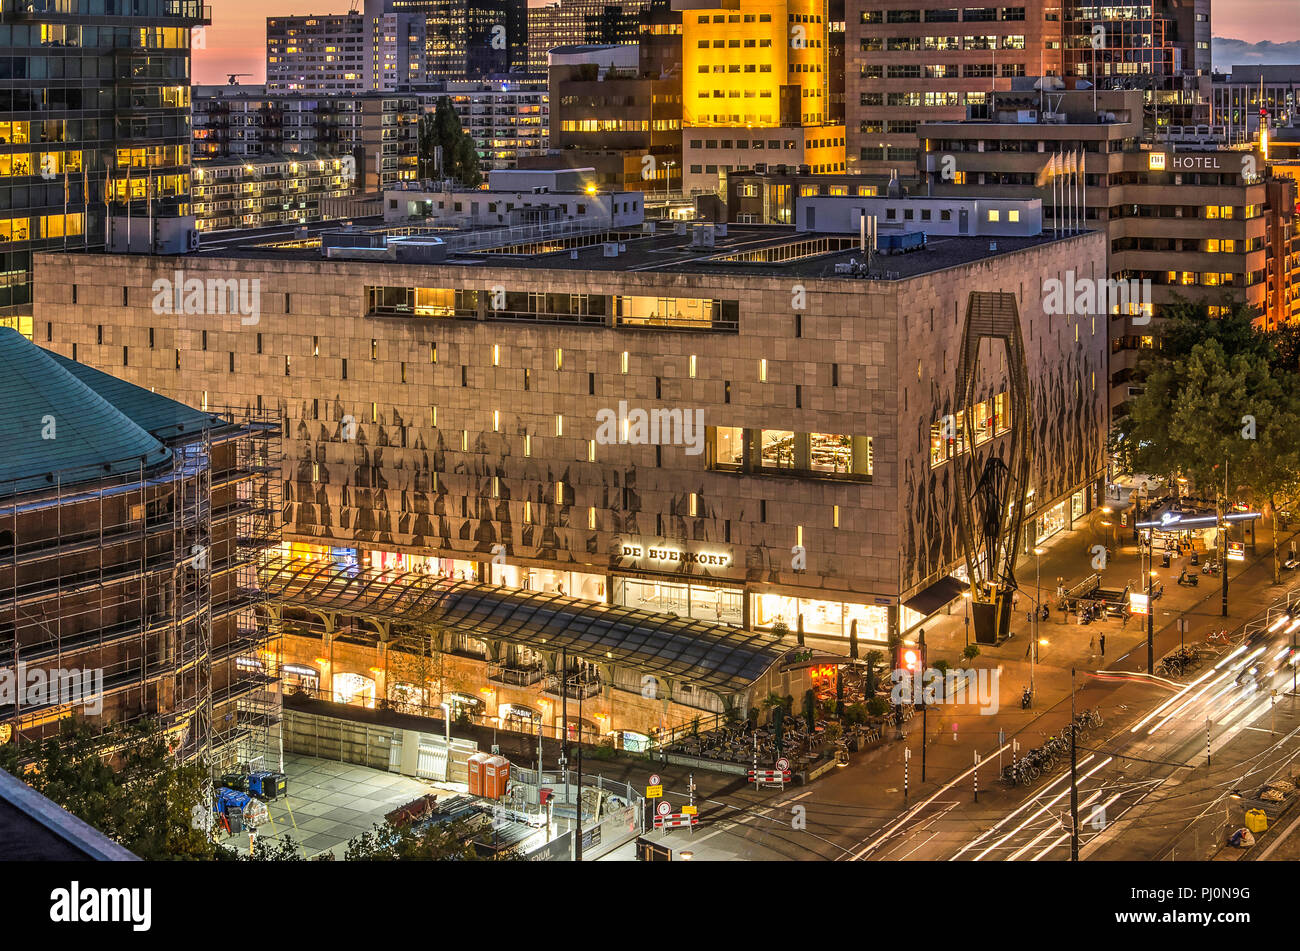 Rotterdam, The Netherlands, August 31, 2018: Bijenkorf department store by architect Marcel Breuer (1957), Koopgoot shopping street and Coolsingel bou - Stock Image